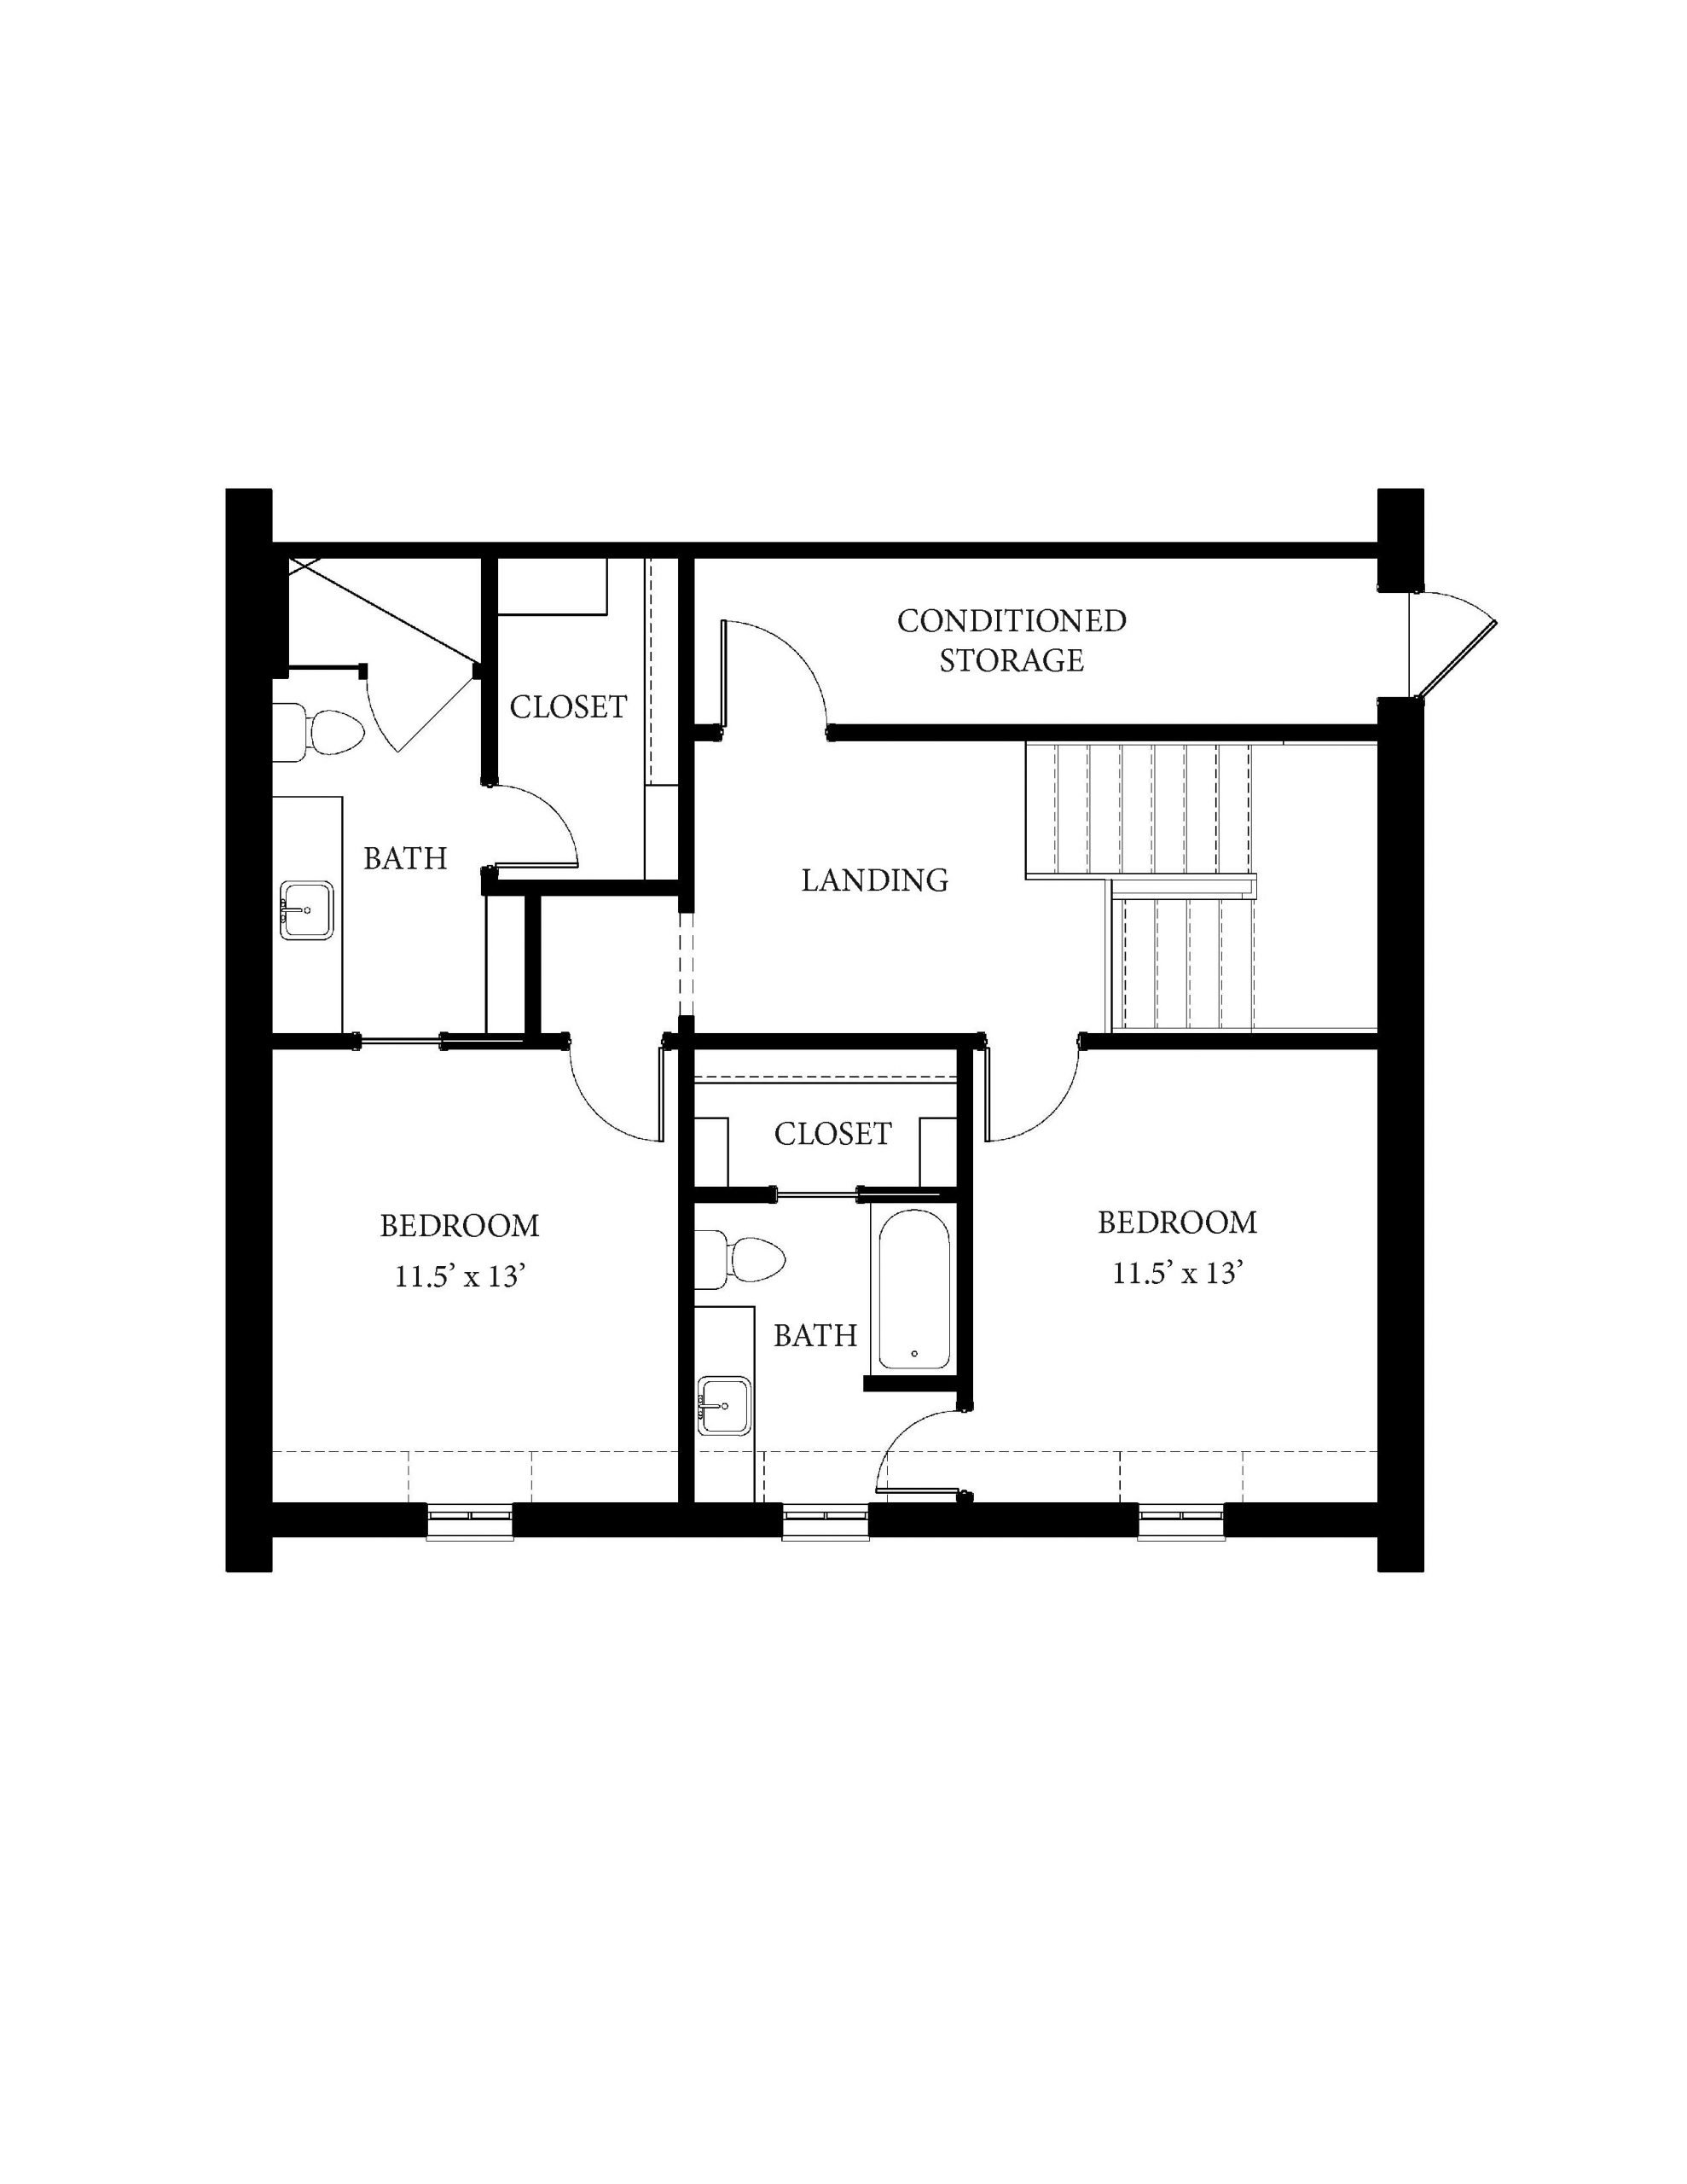 920 N.W. 154th Floor Plans_Page_2